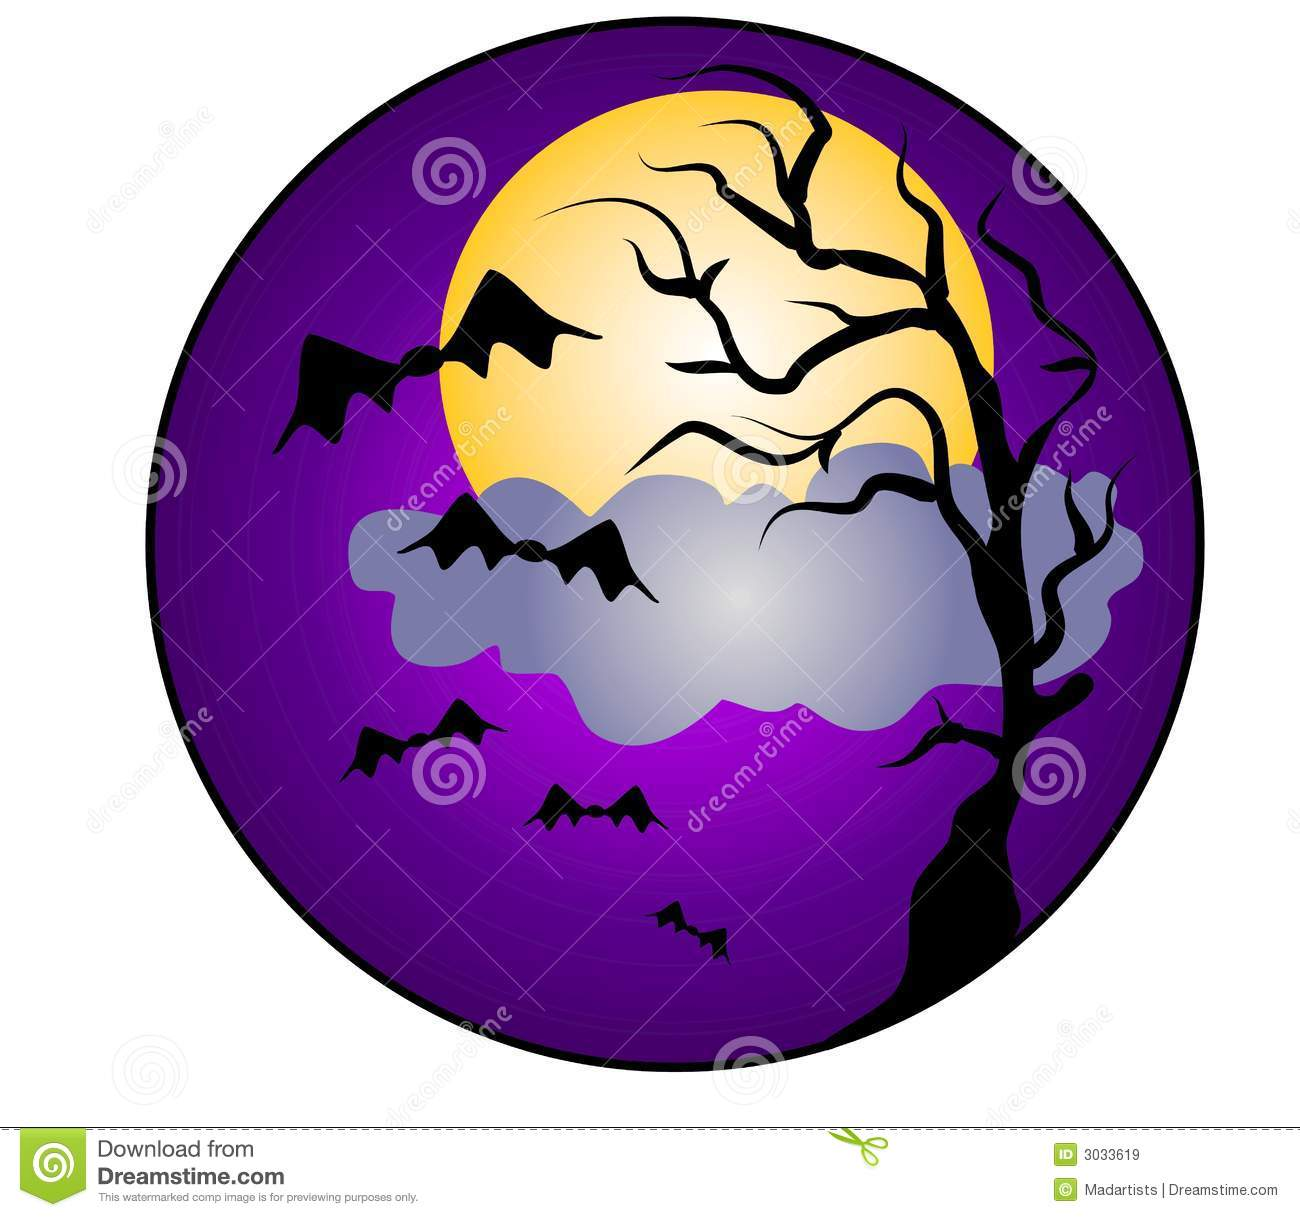 halloween night bats clip art stock illustration illustration of rh dreamstime com movie night clip art free casino night clip art